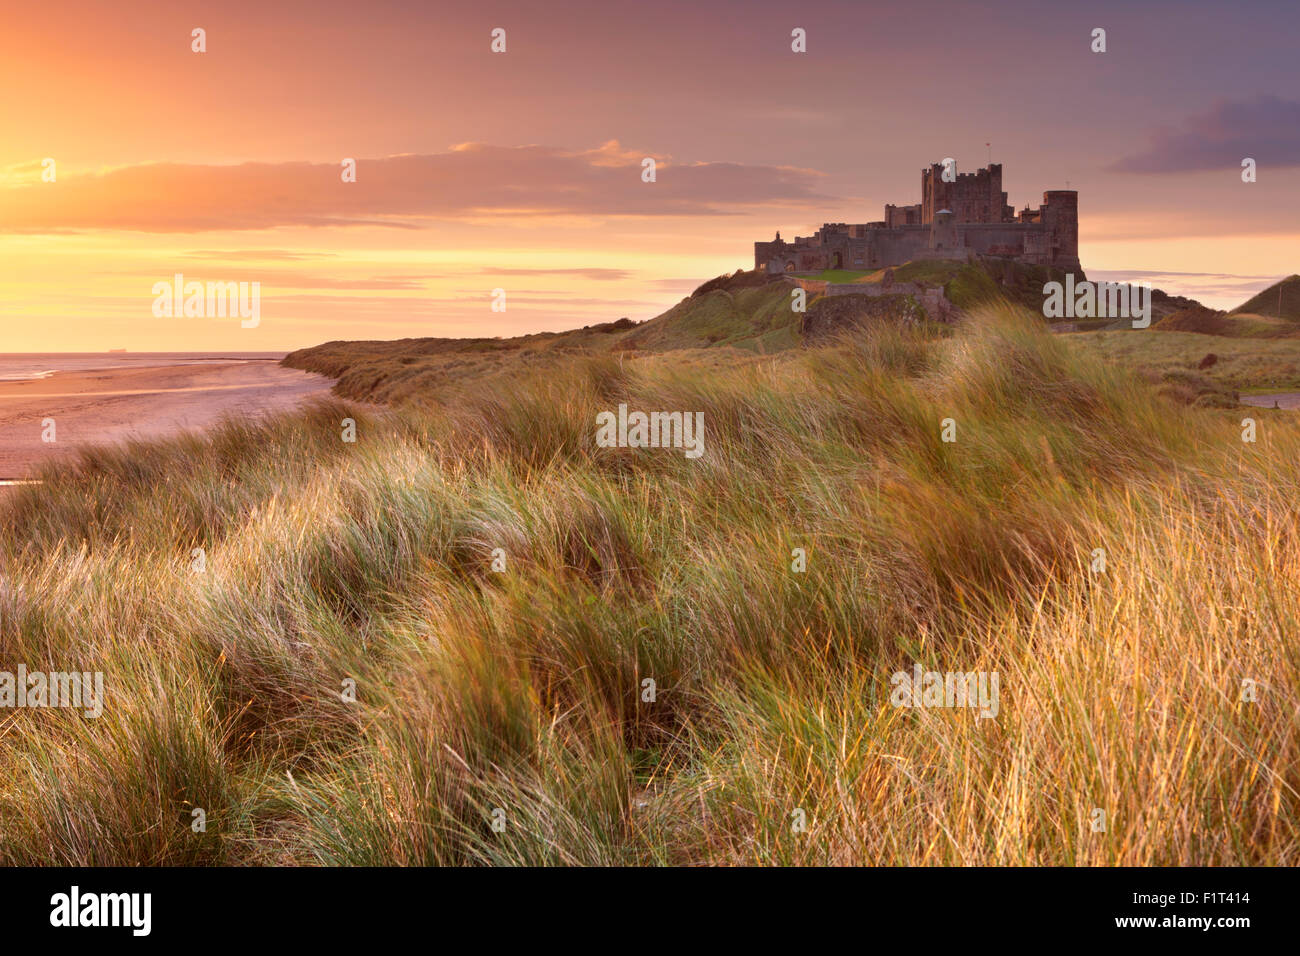 Sunrise over the dunes at Bamburgh Castle in Northumberland, England. - Stock Image